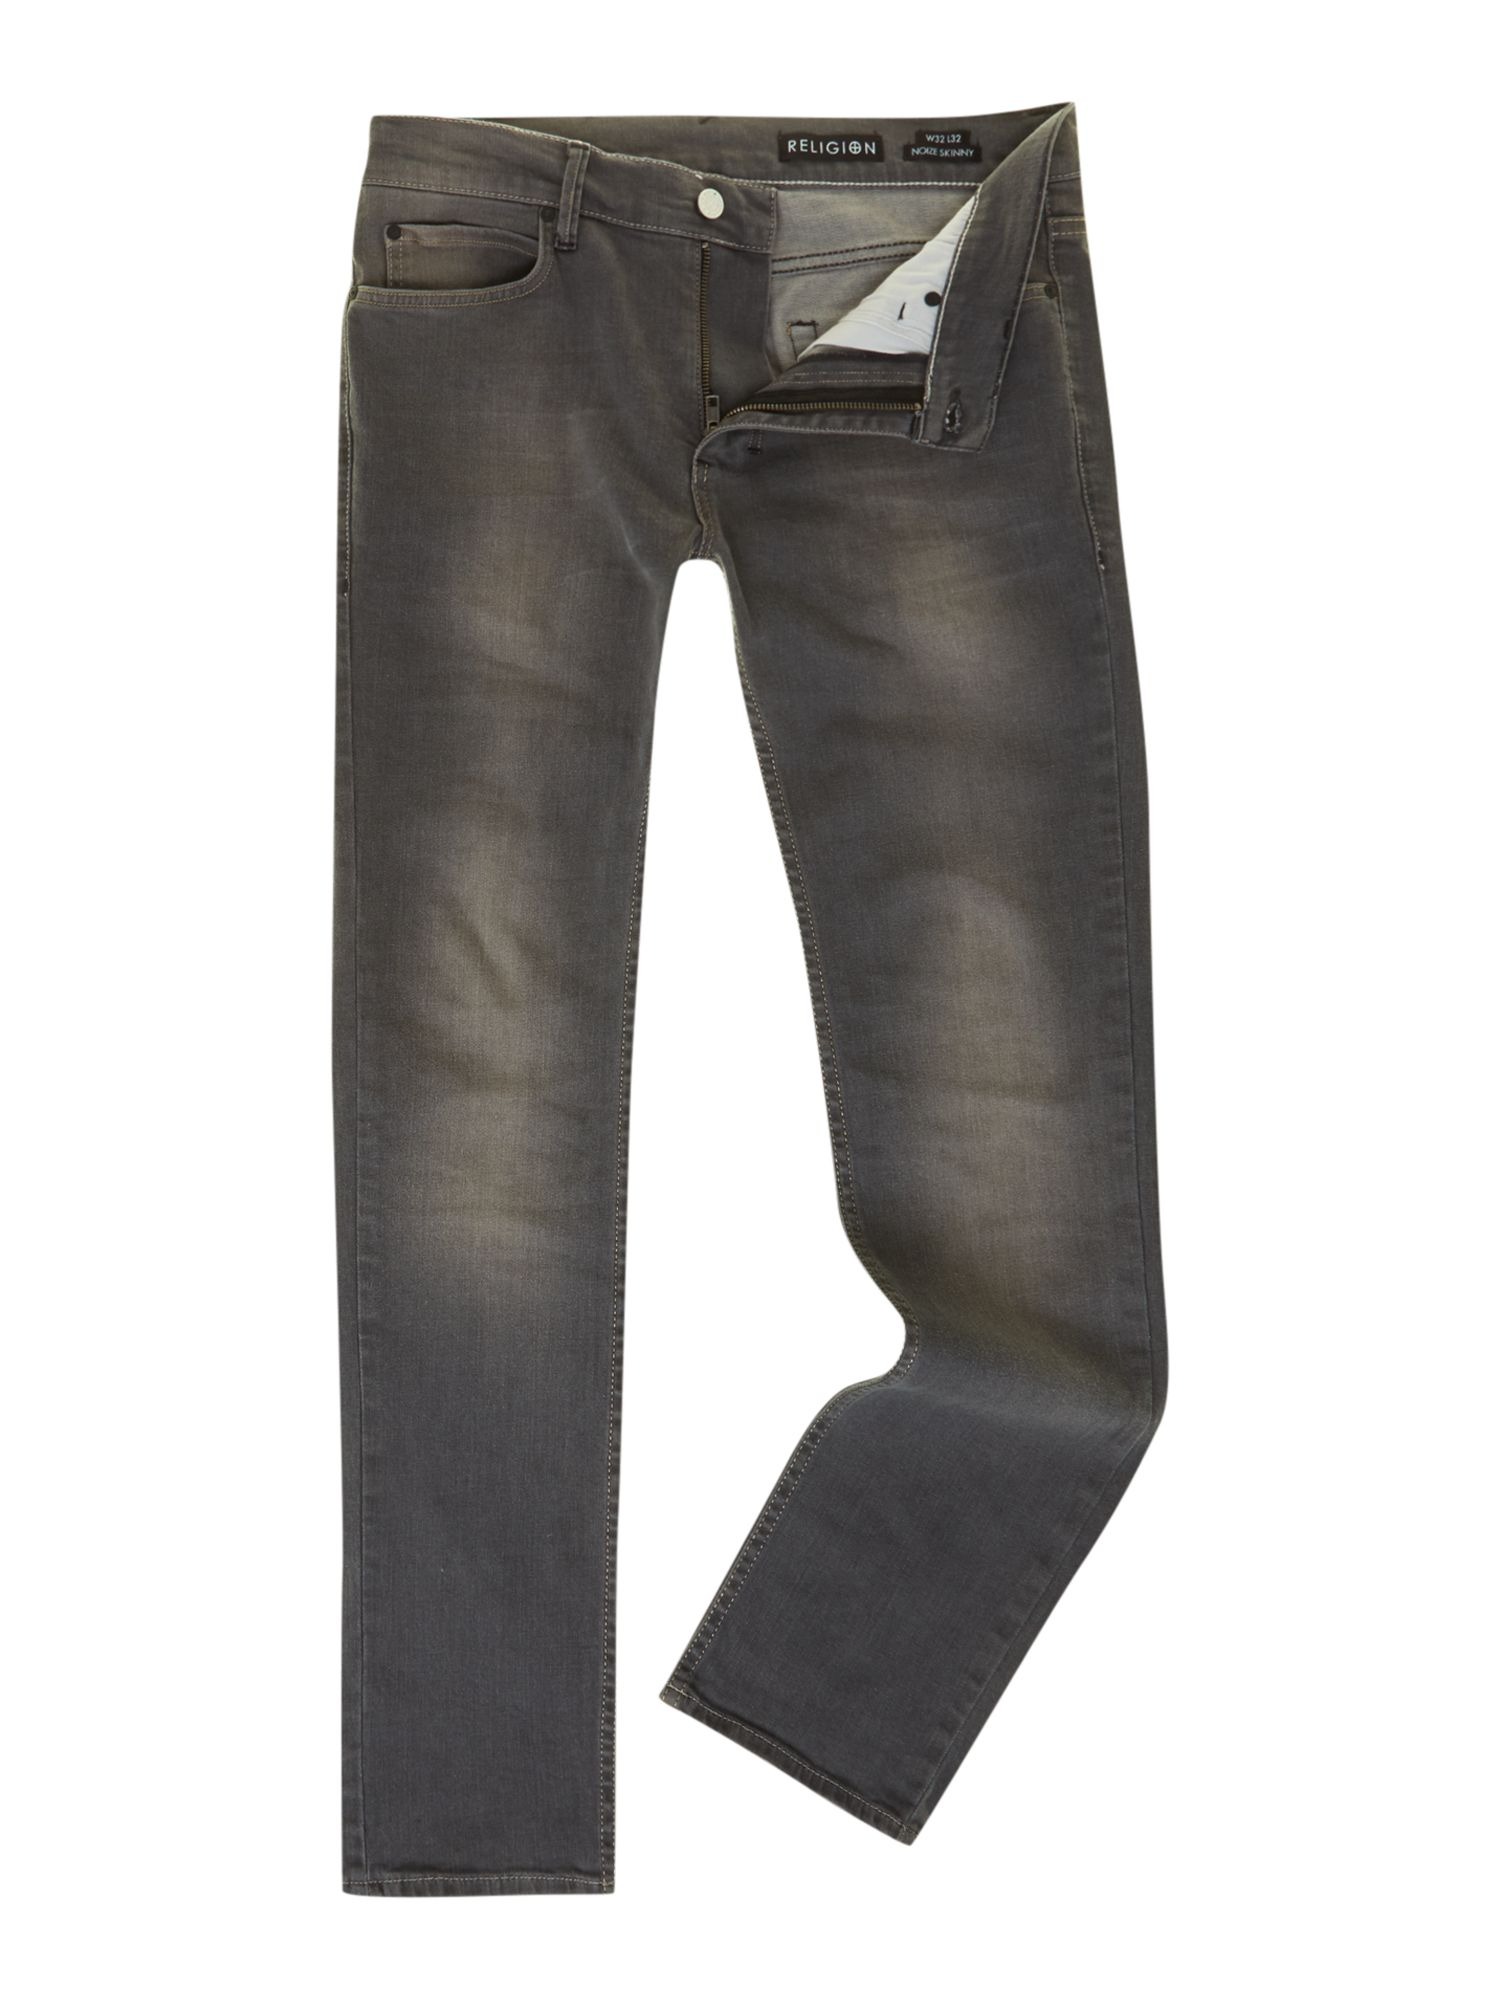 Slim fit grey wash jean